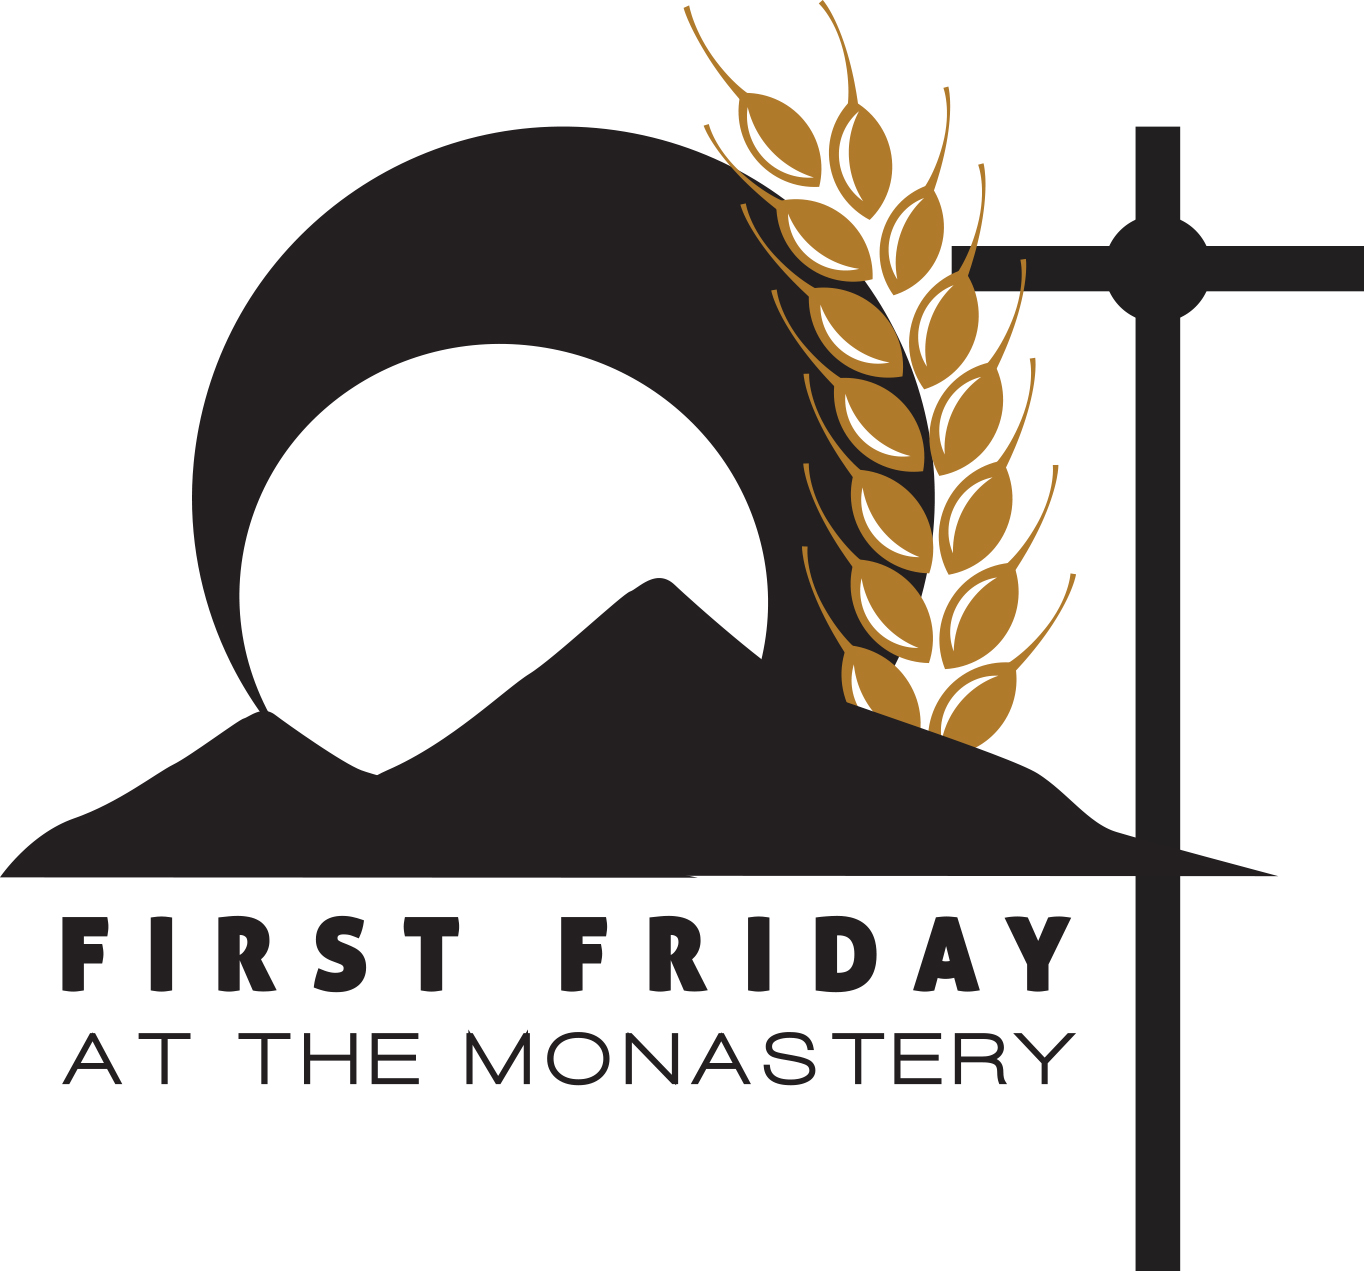 First Friday at the Monastery - JAN. 1st